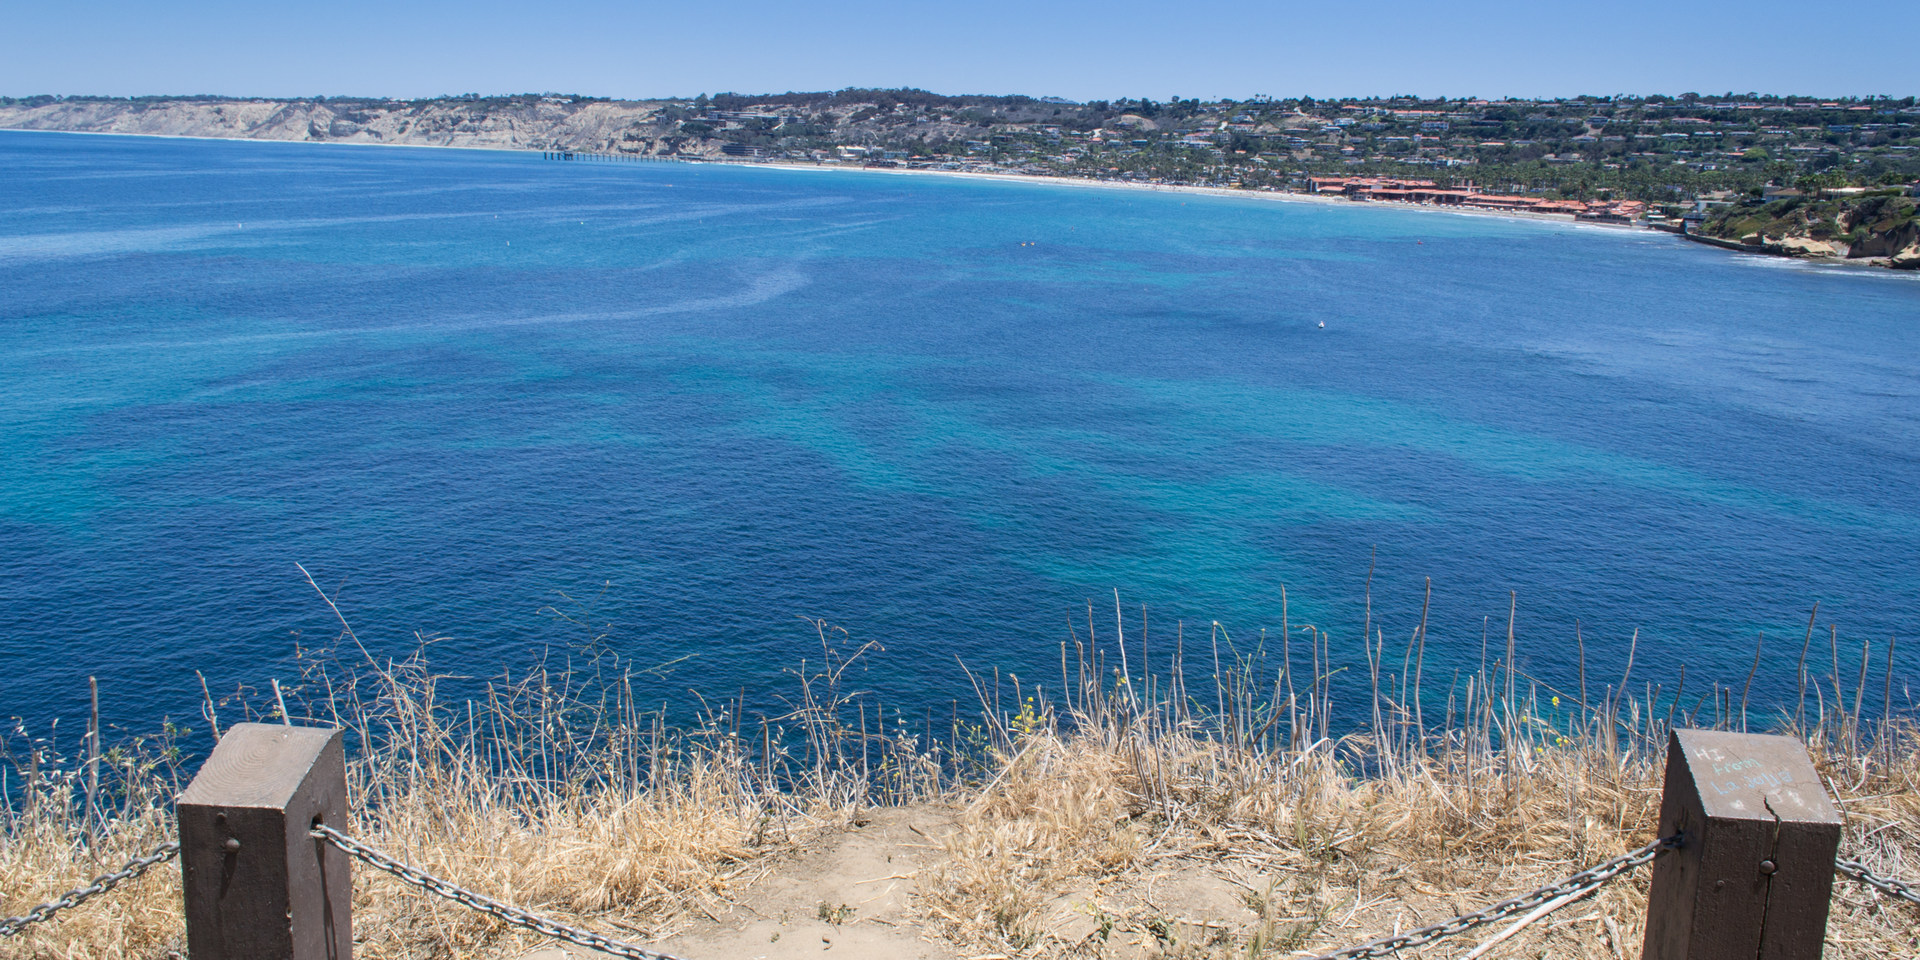 la jolla dating site La jolla and san diego have many regional attractions to offer including arts, museums, wildlife, racetracks, festivals, galleries, and more.